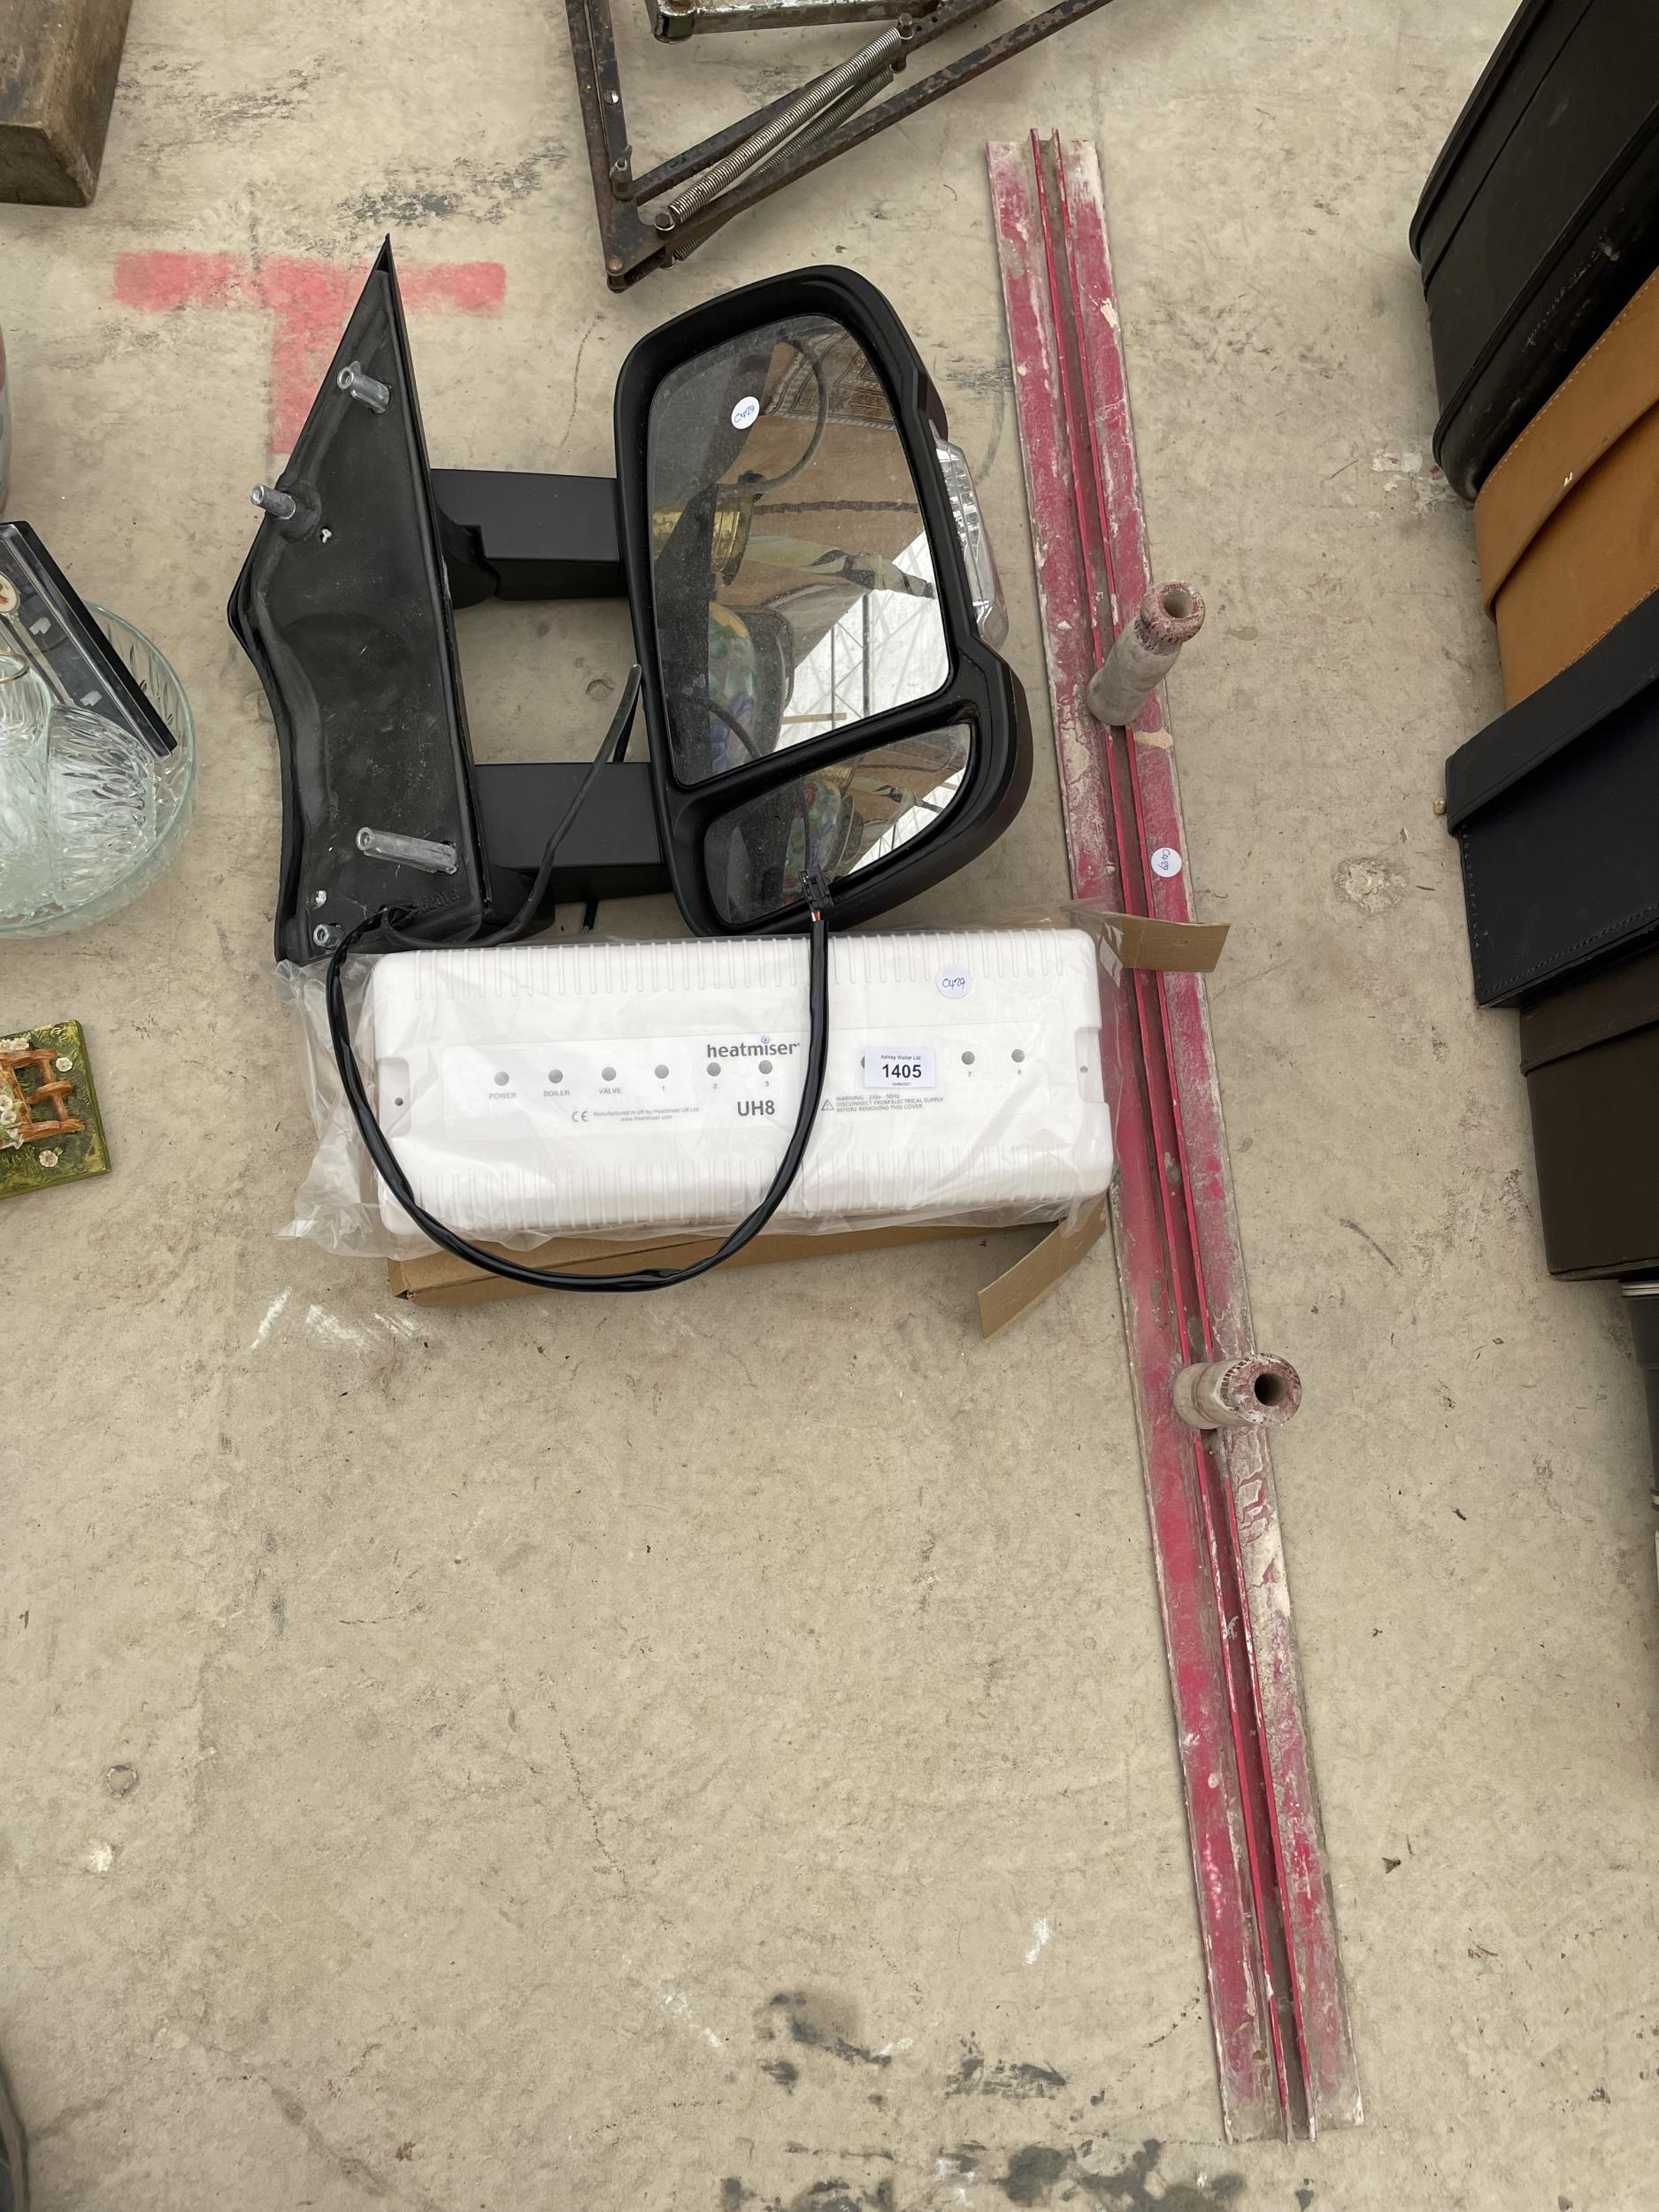 AN ASSORTMENT OF ITEMS TO INCLUDE A LEVELING TROWEL, A HEATMISER AND A VAN WING MIRROR